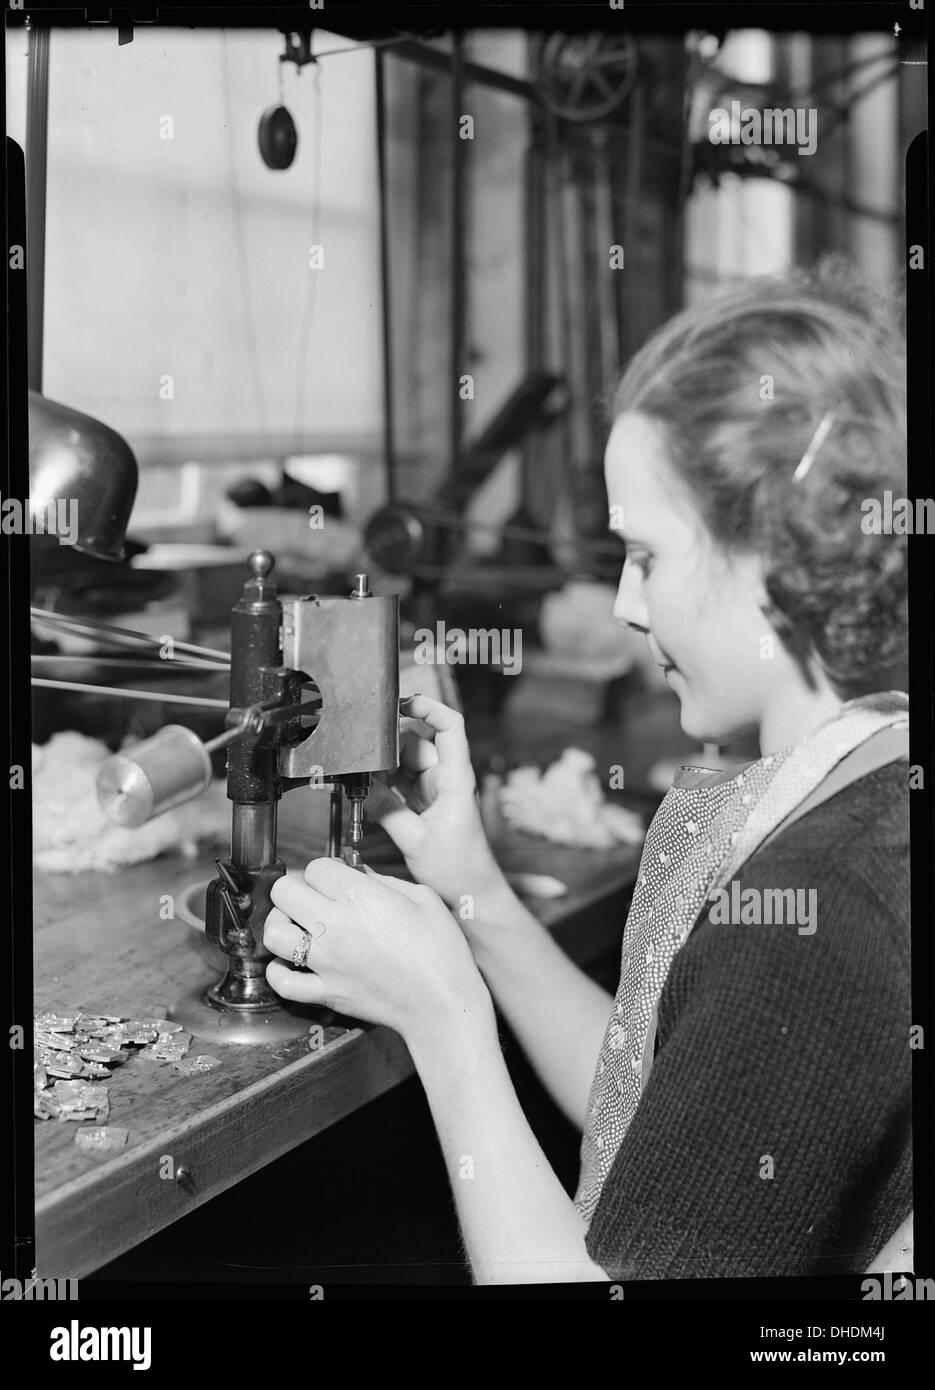 Lancaster, Pennsylvania - Hamilton Watch . Operation - tapping dial foot - simple operation for threading holes in... 518428 - Stock Image